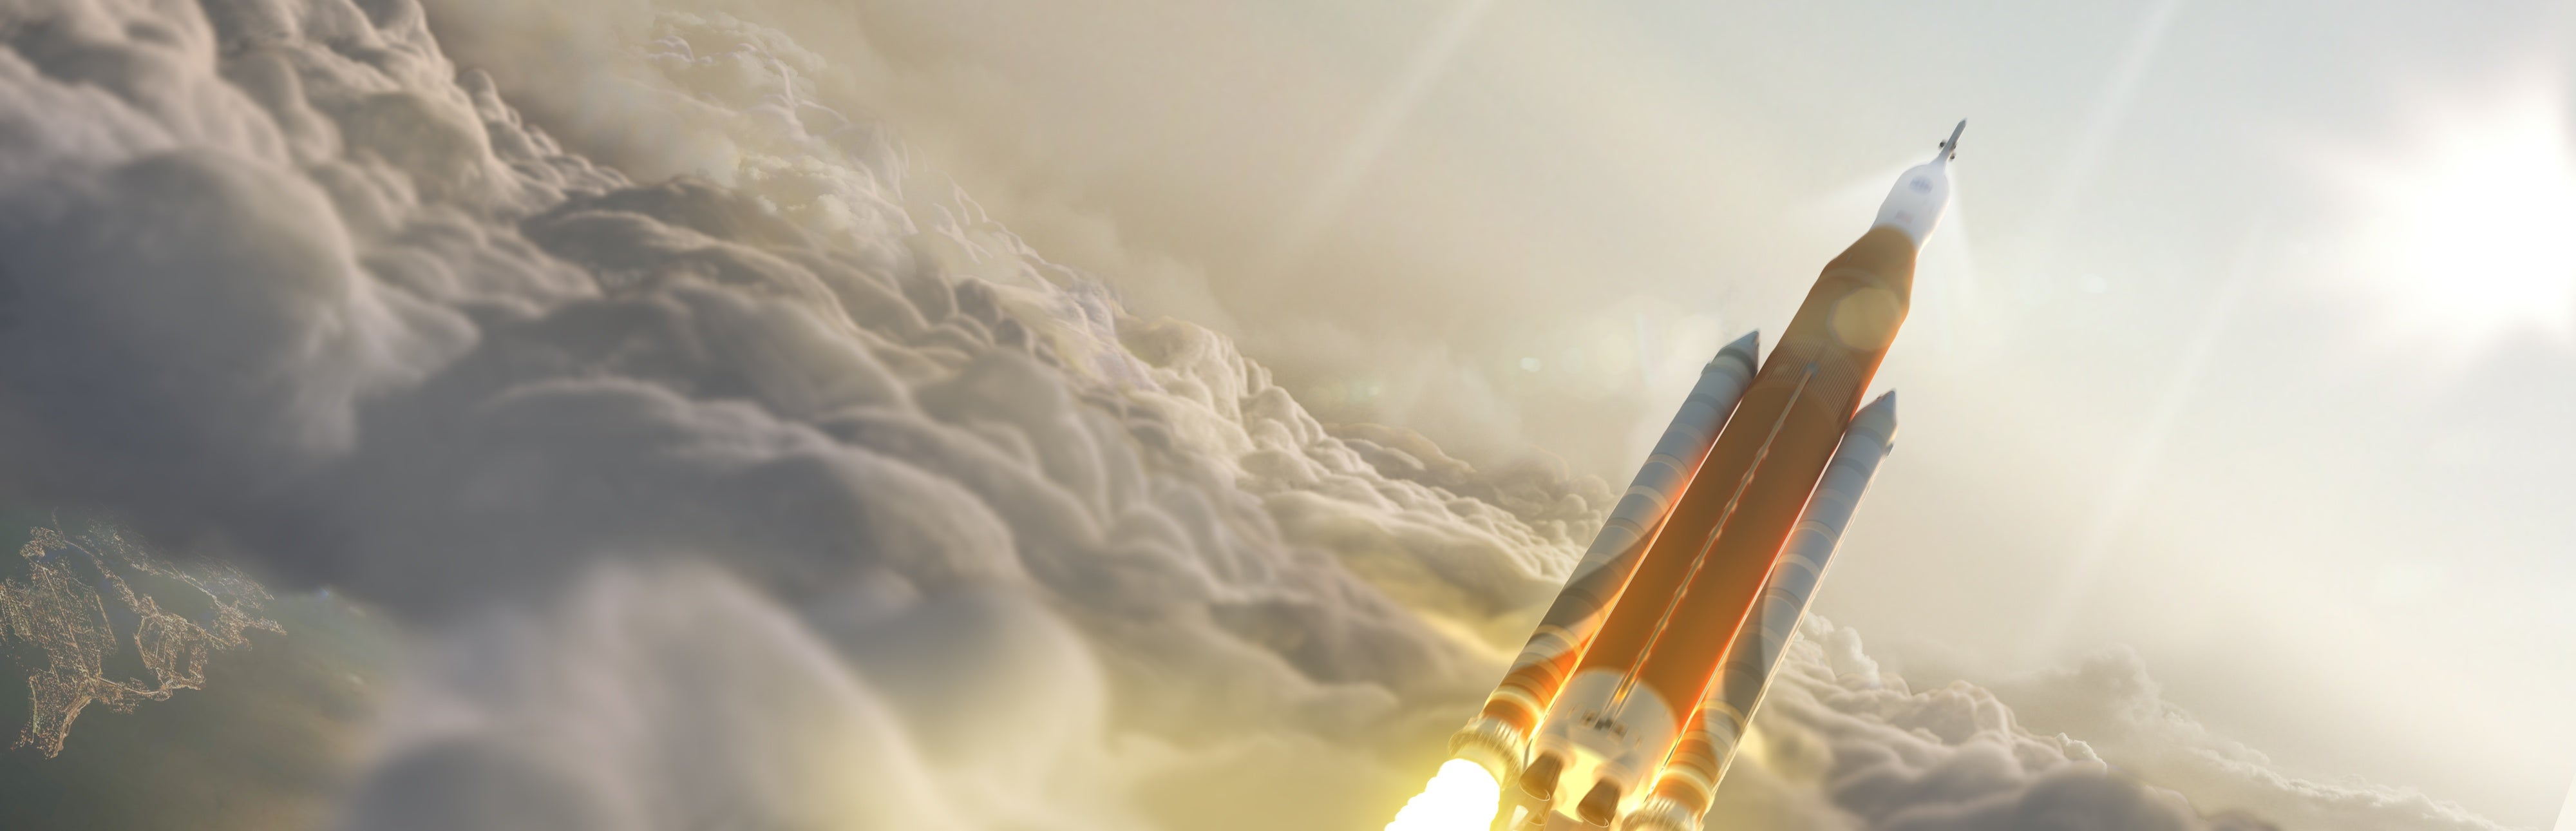 How Much Air Pollution Is Produced by Rockets? - Scientific